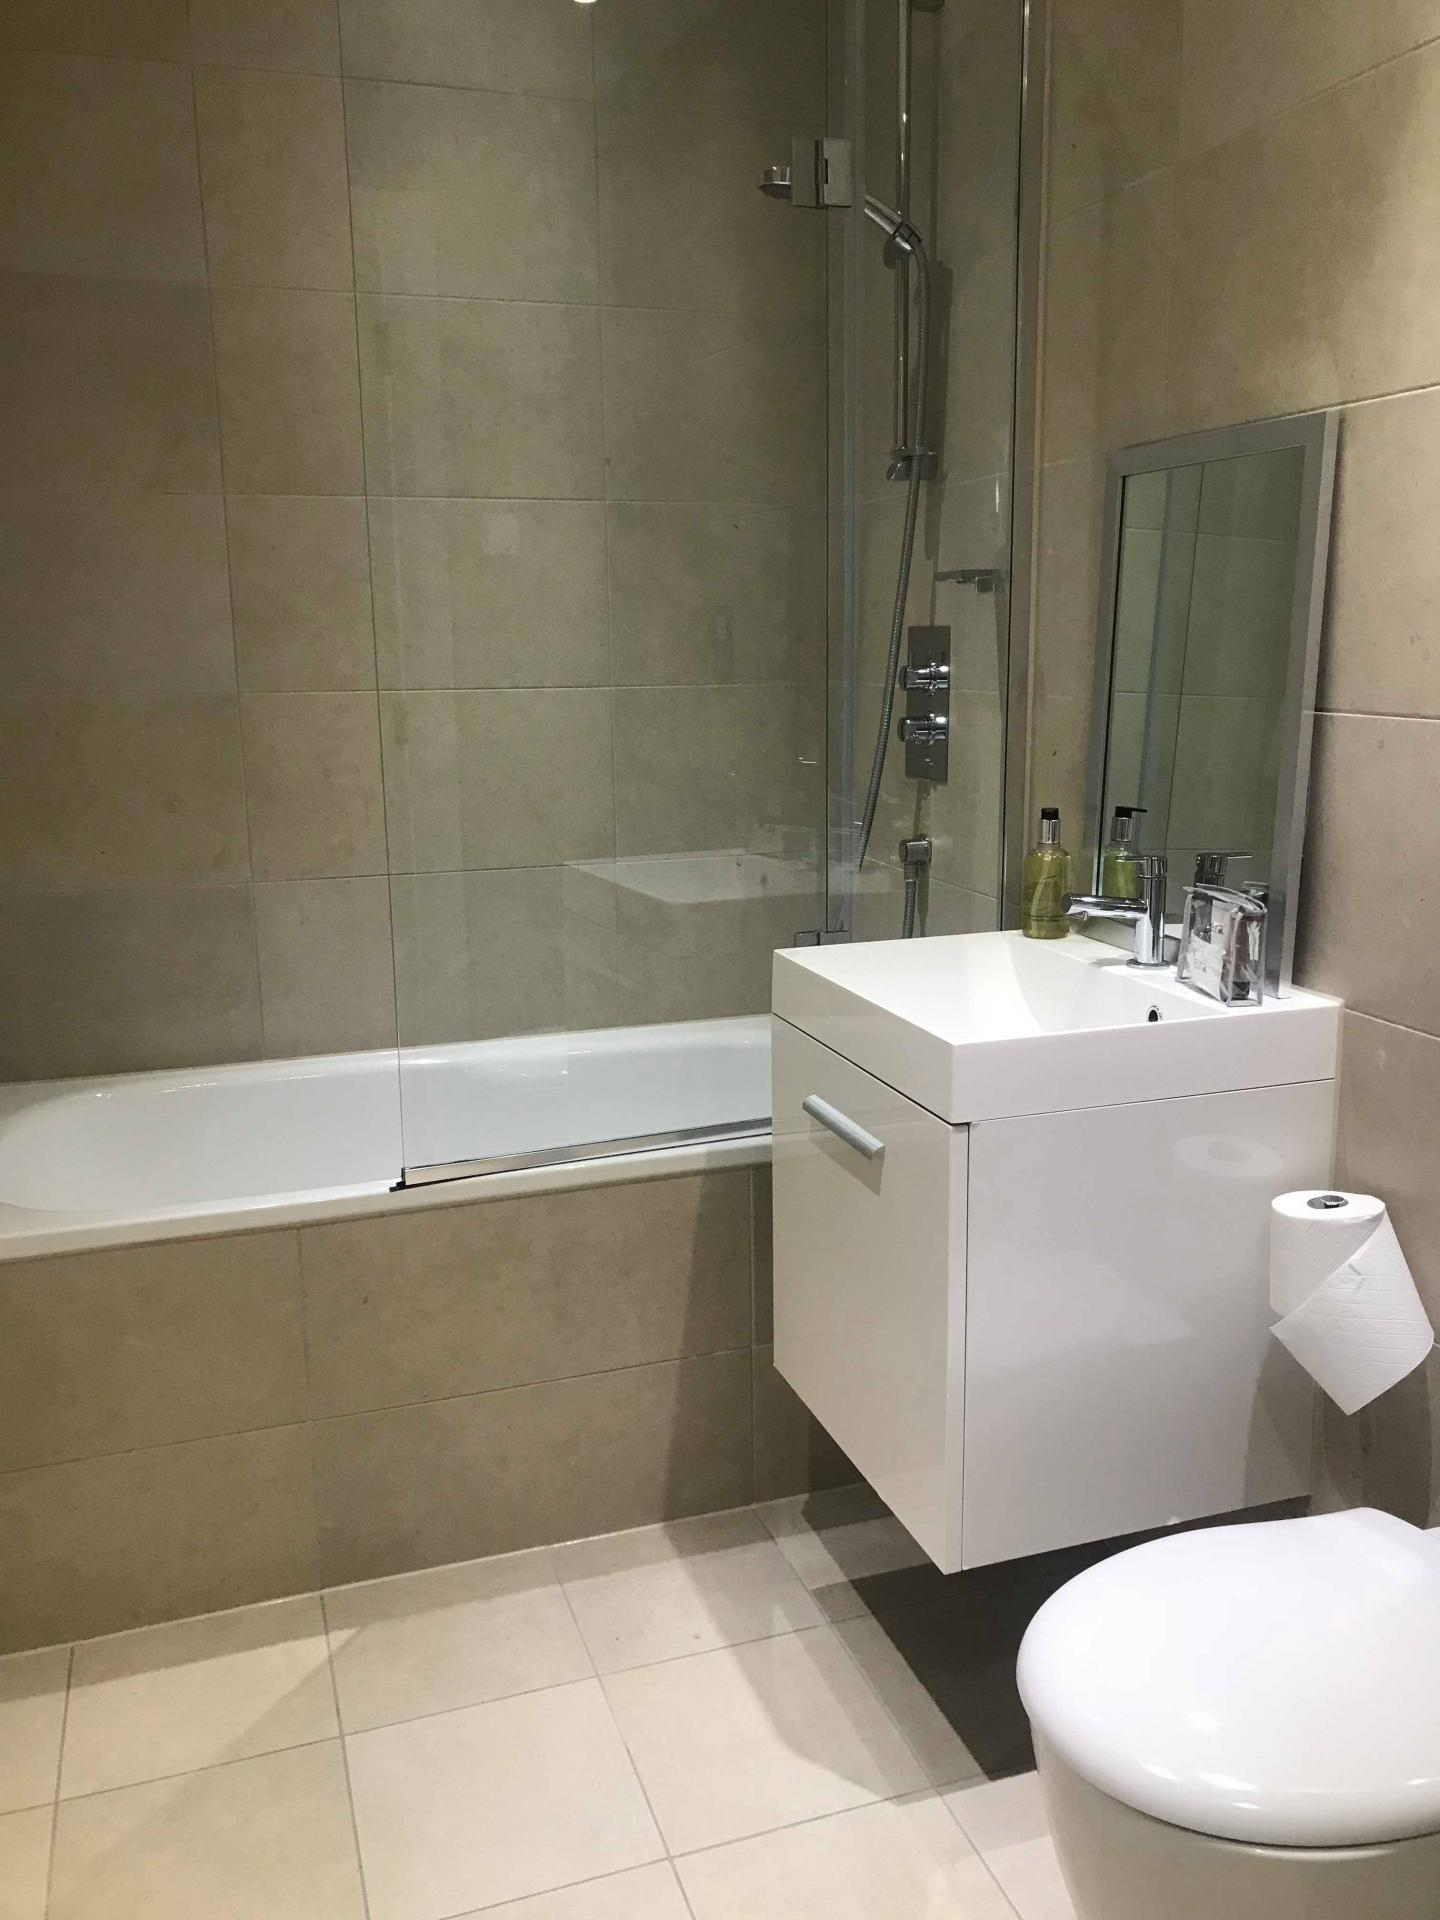 Sink at Ocean Village Serviced Apartments, Ocean Village, Southampton - Citybase Apartments